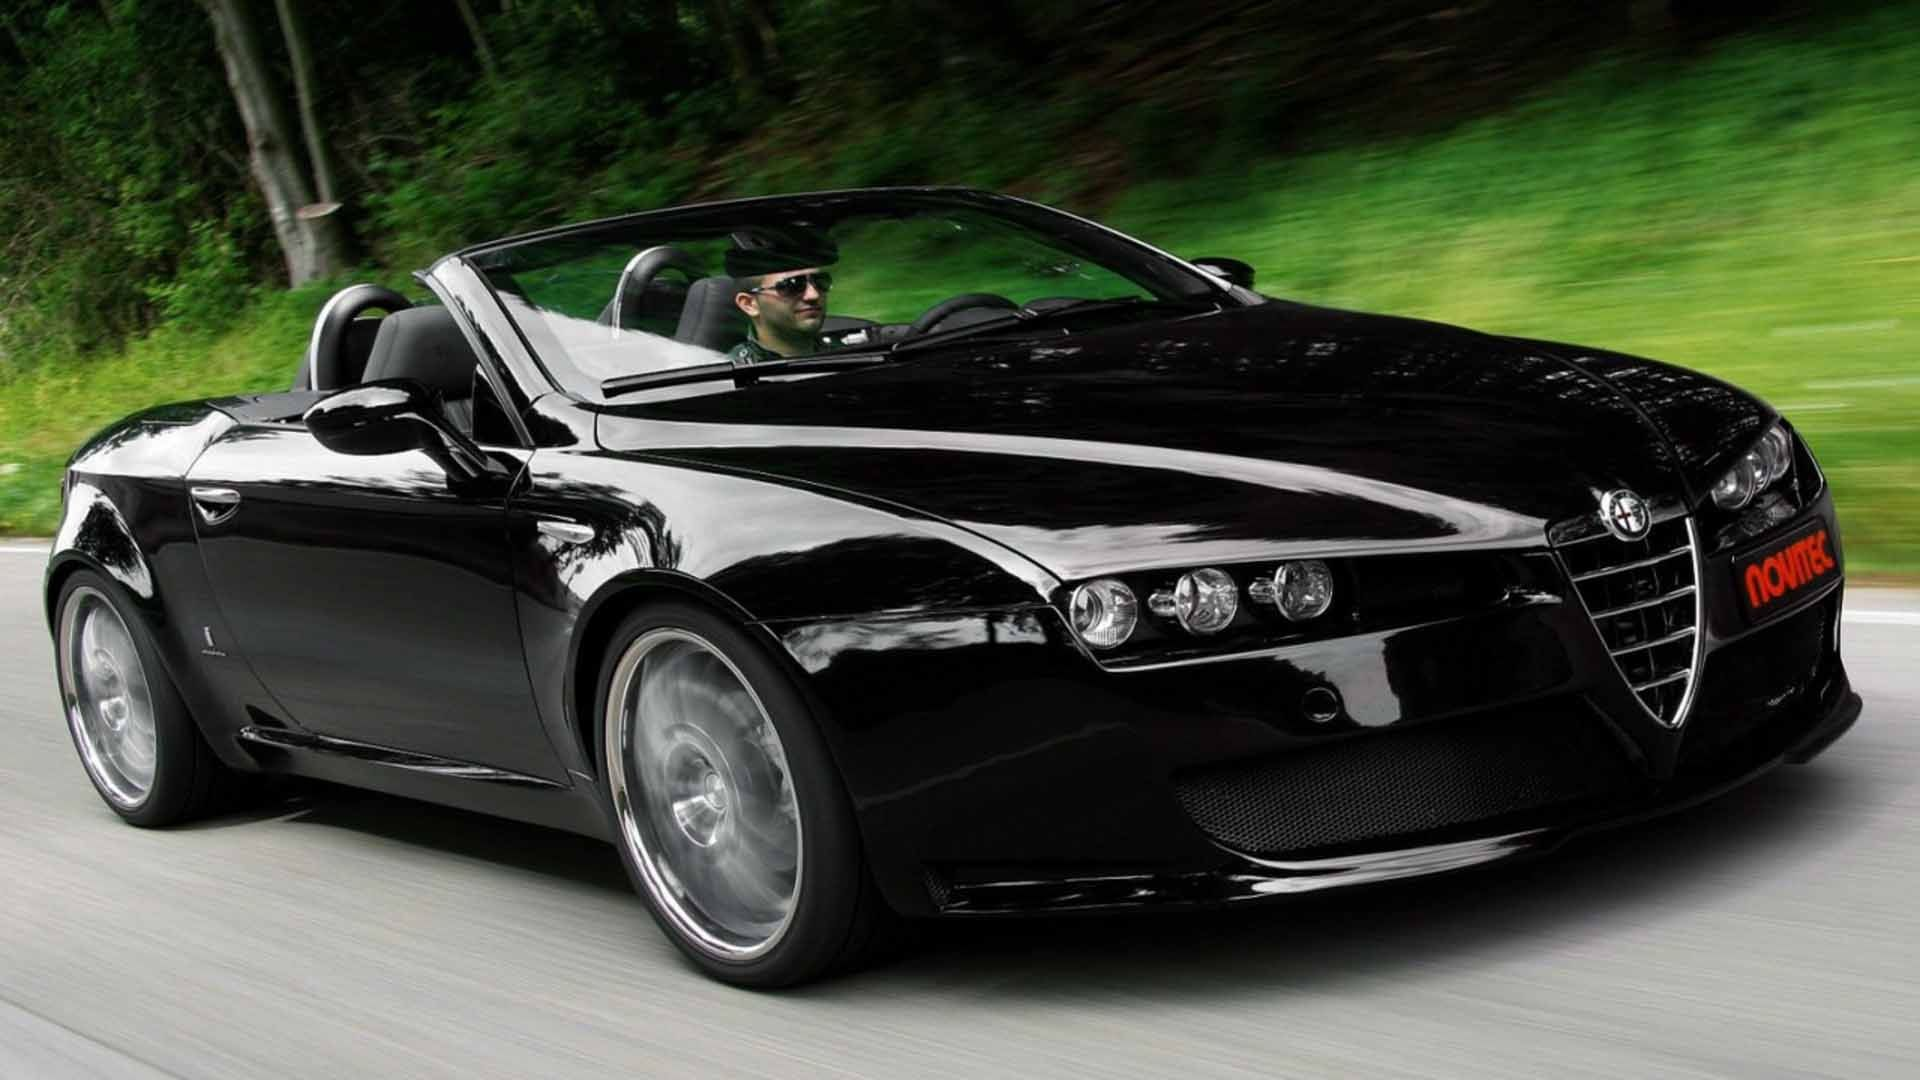 Alfa Romeo Spider in black on hd wallpapers http//www